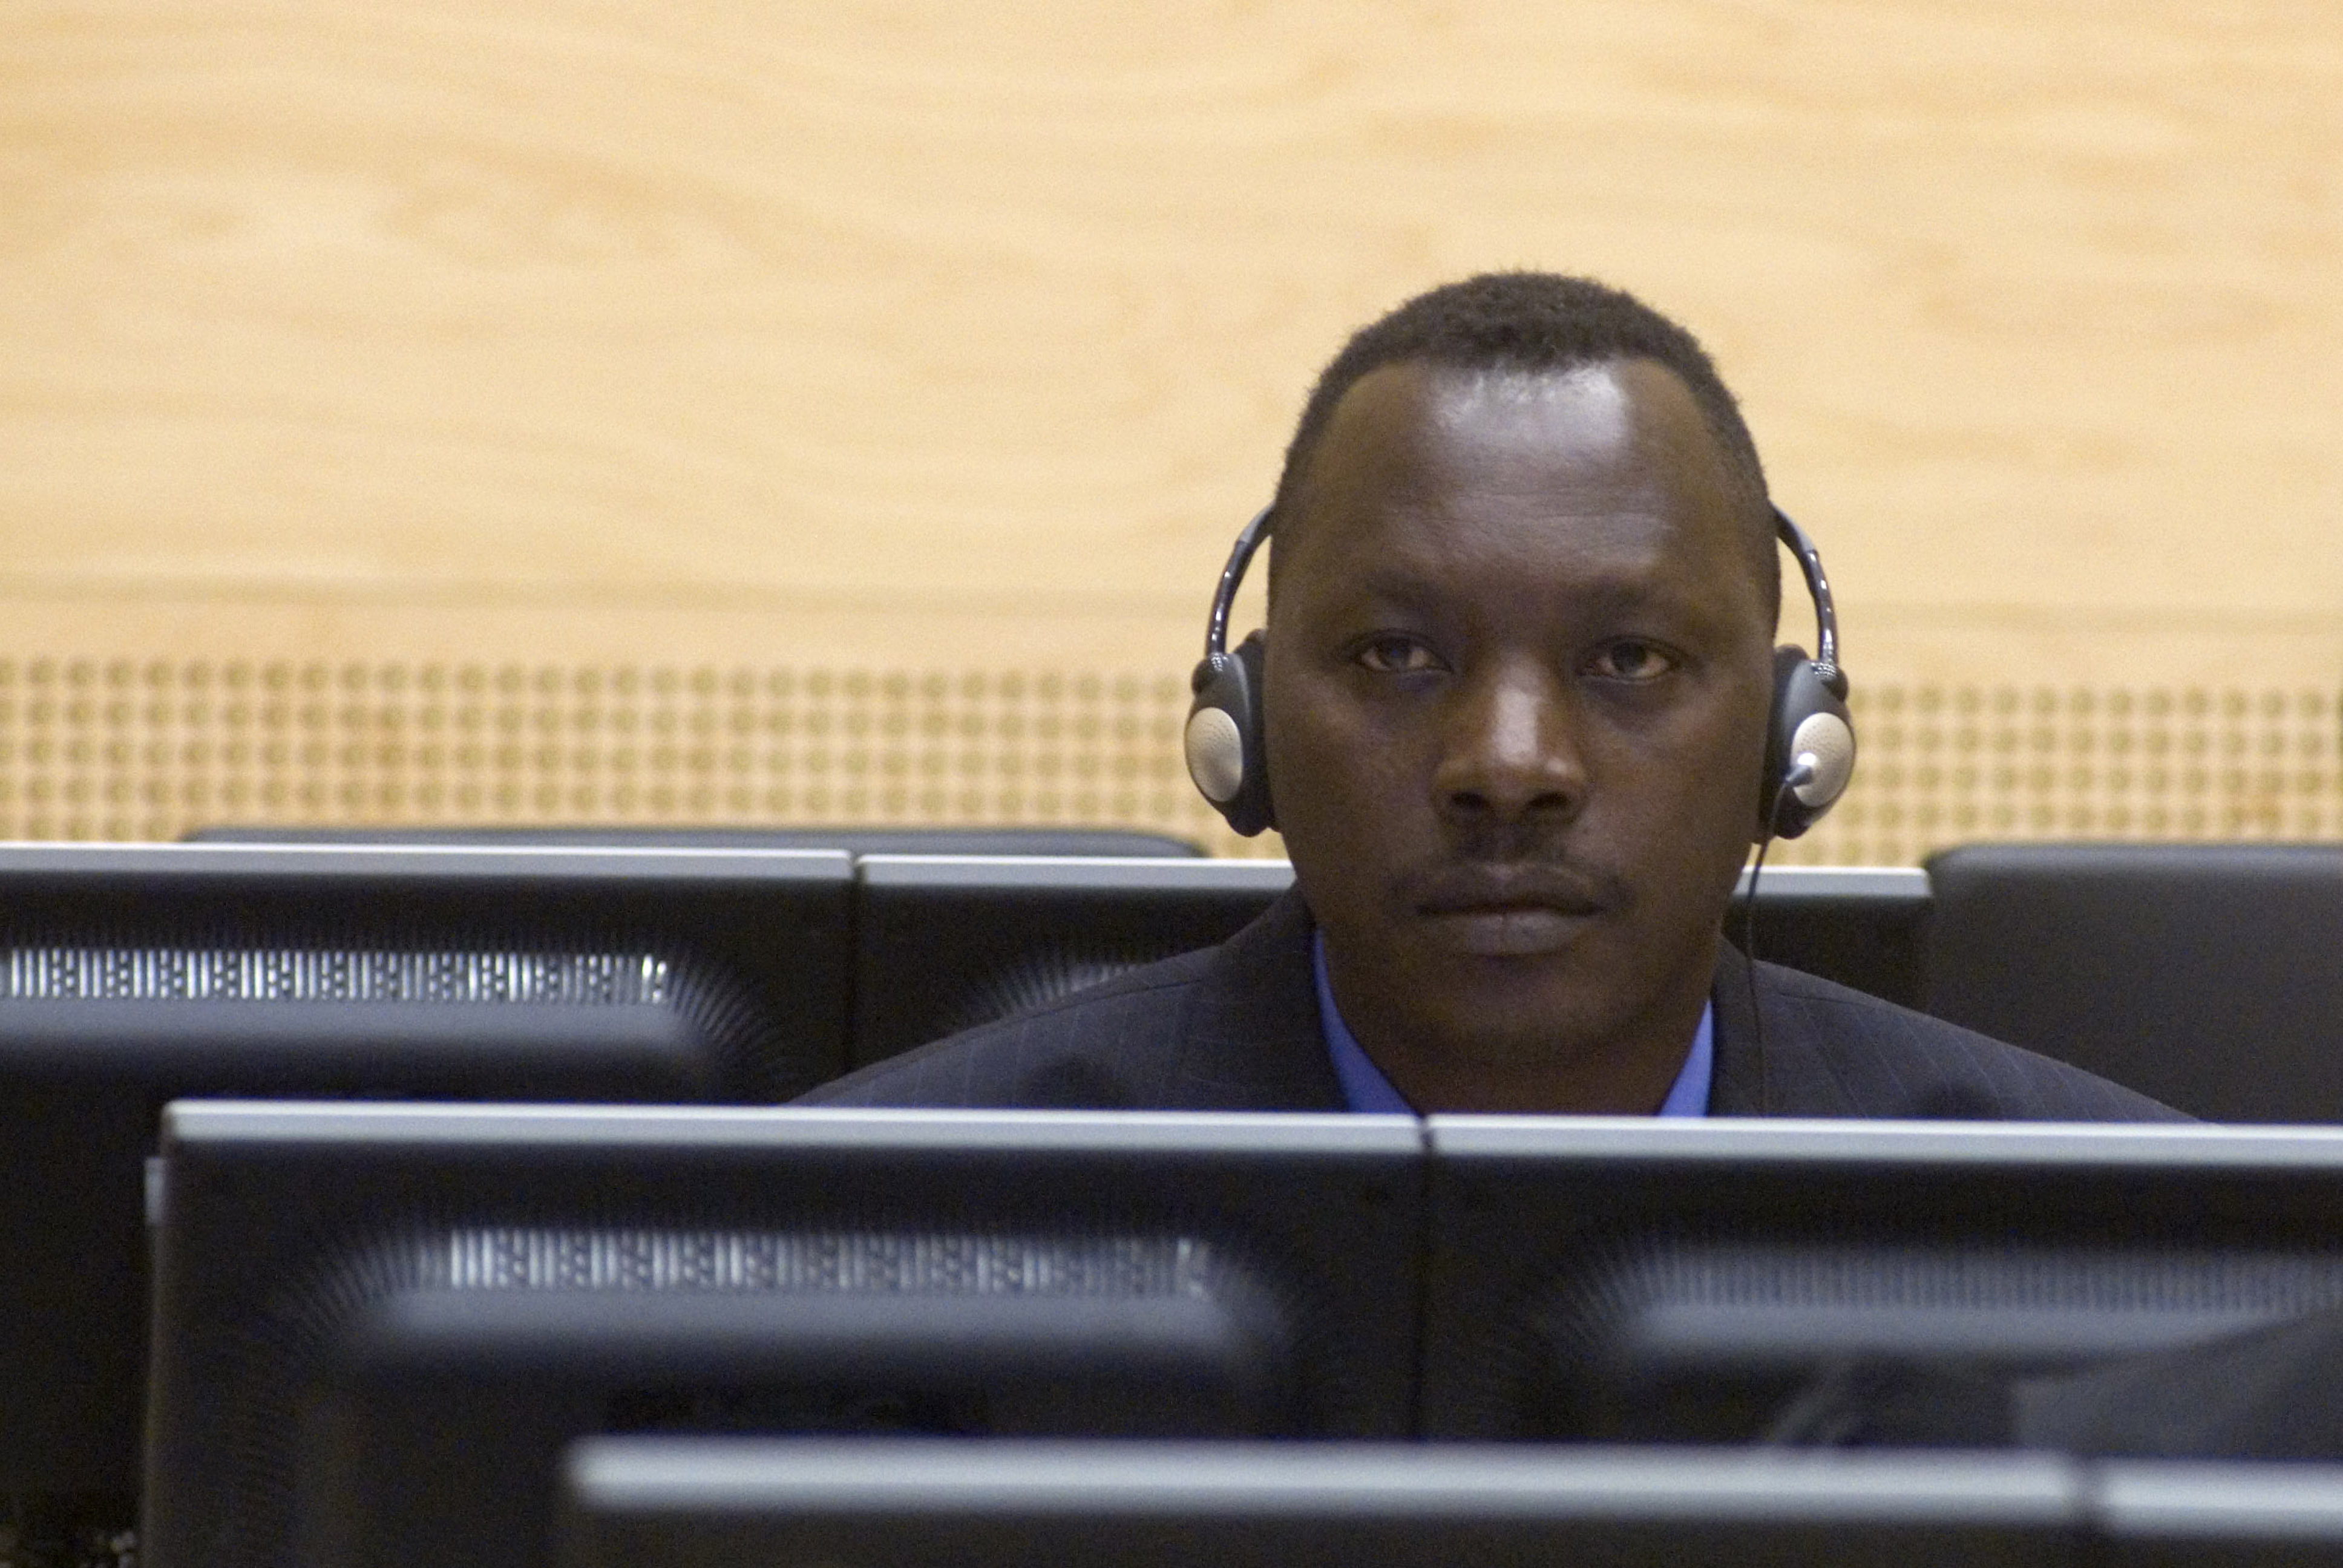 Thomas Lubanga at his first appearance before the ICC in March 2006.